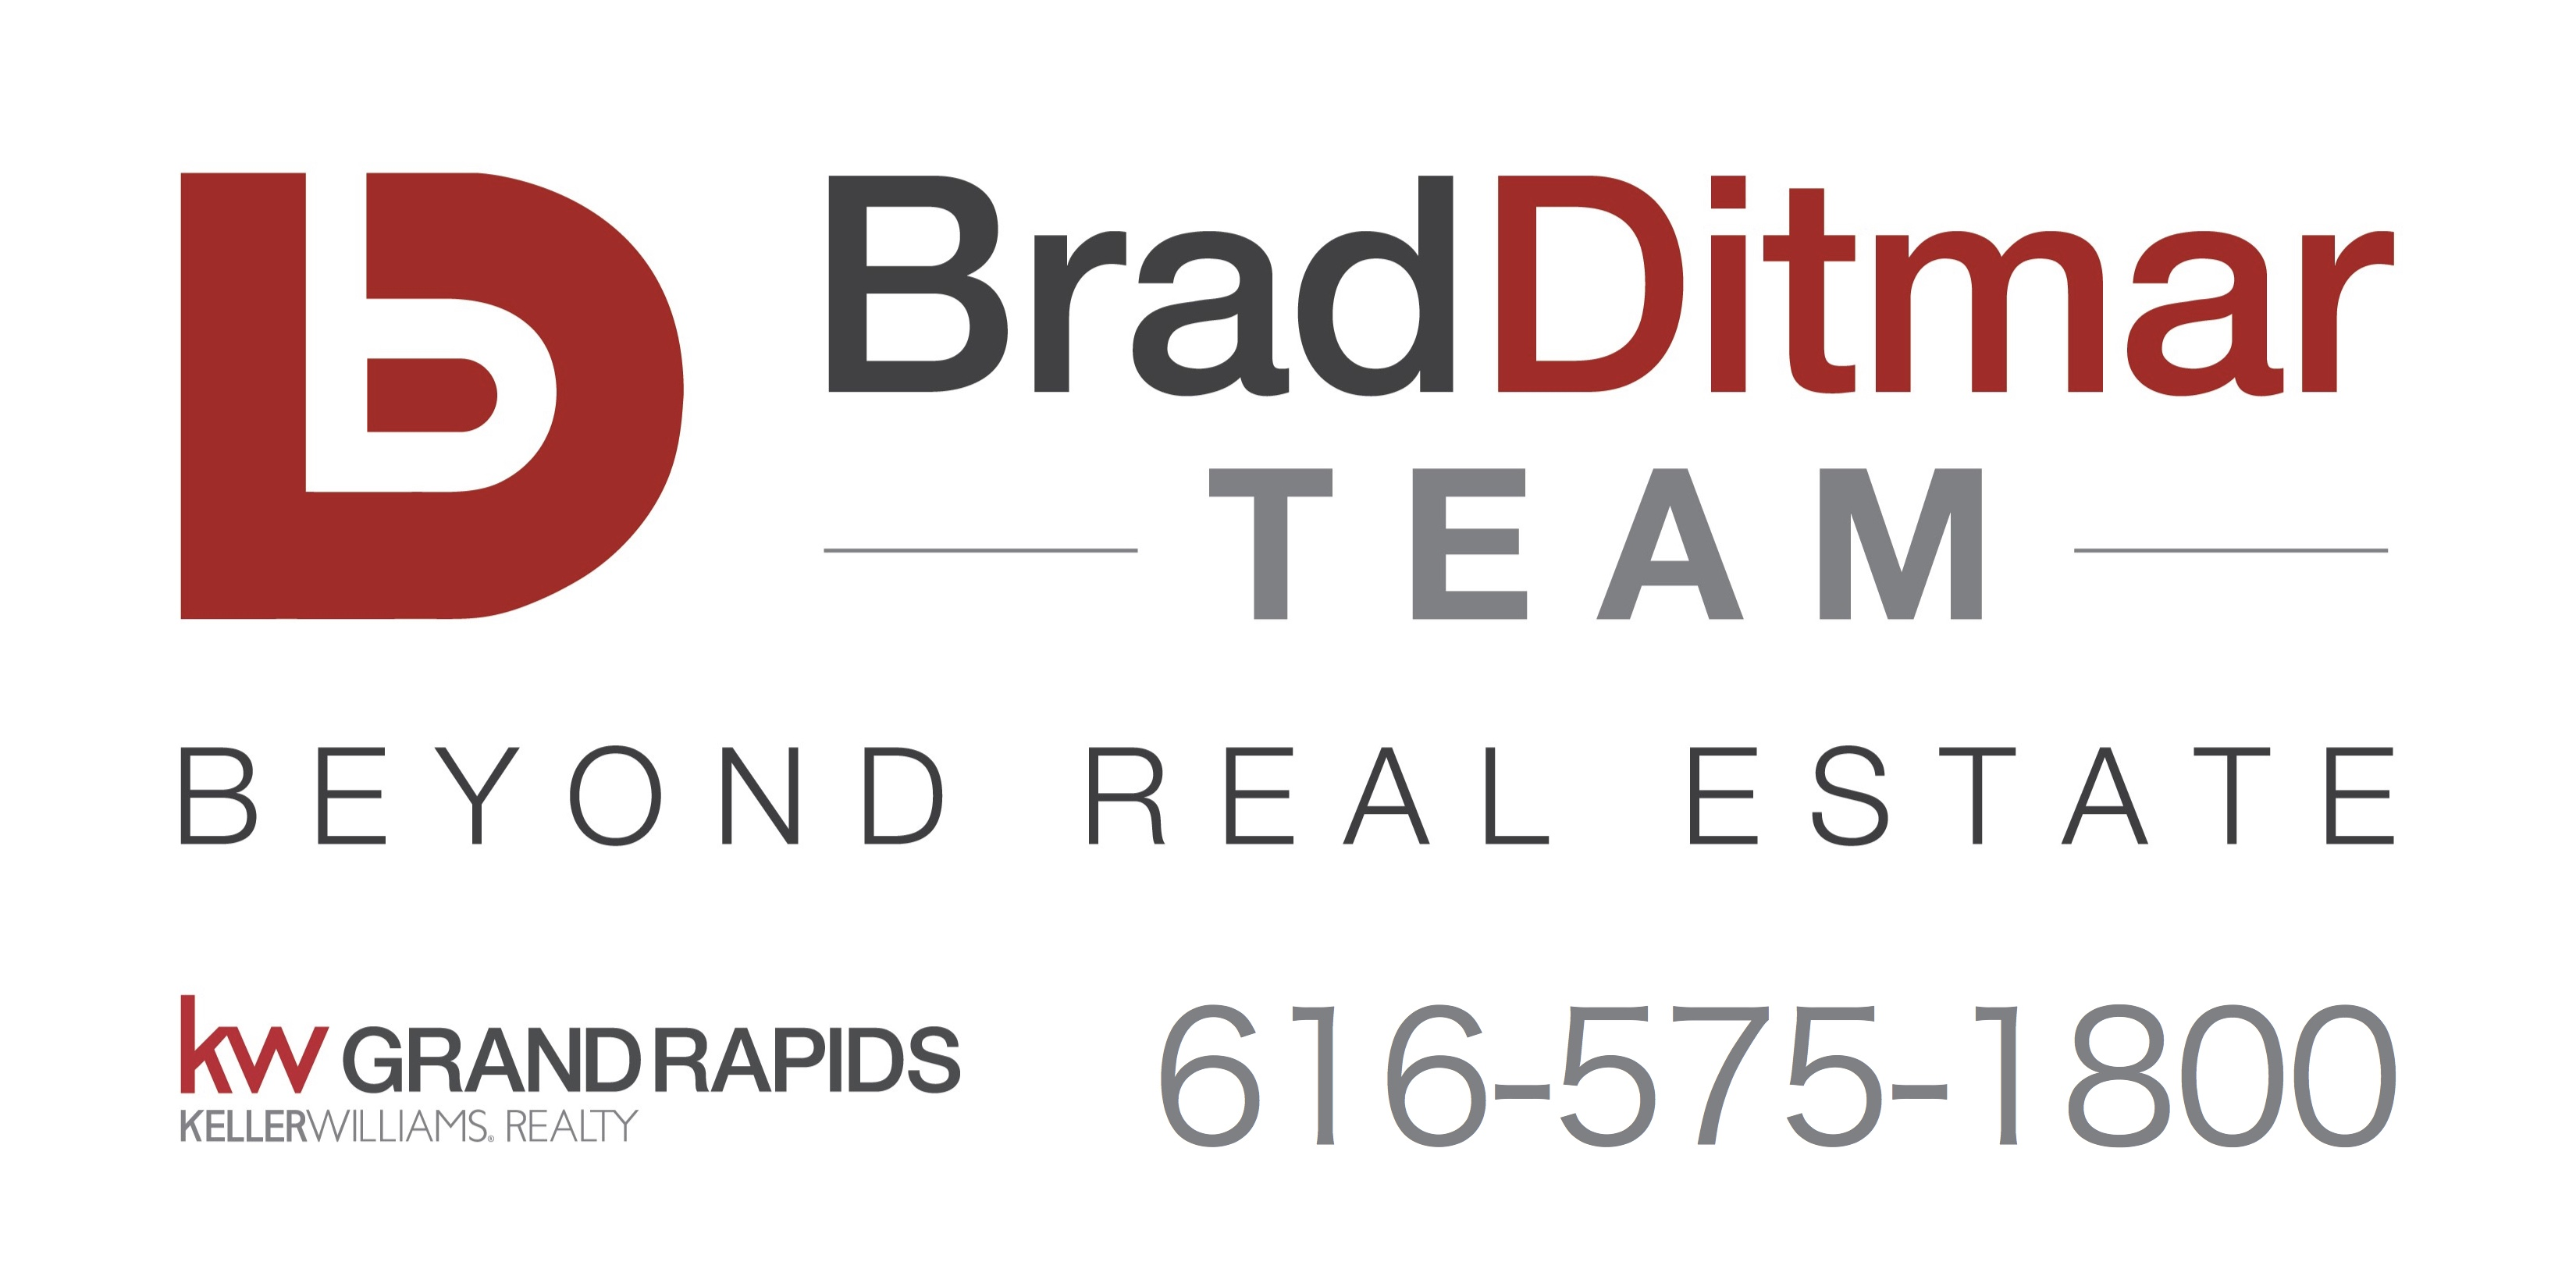 The Brad Ditmar Team